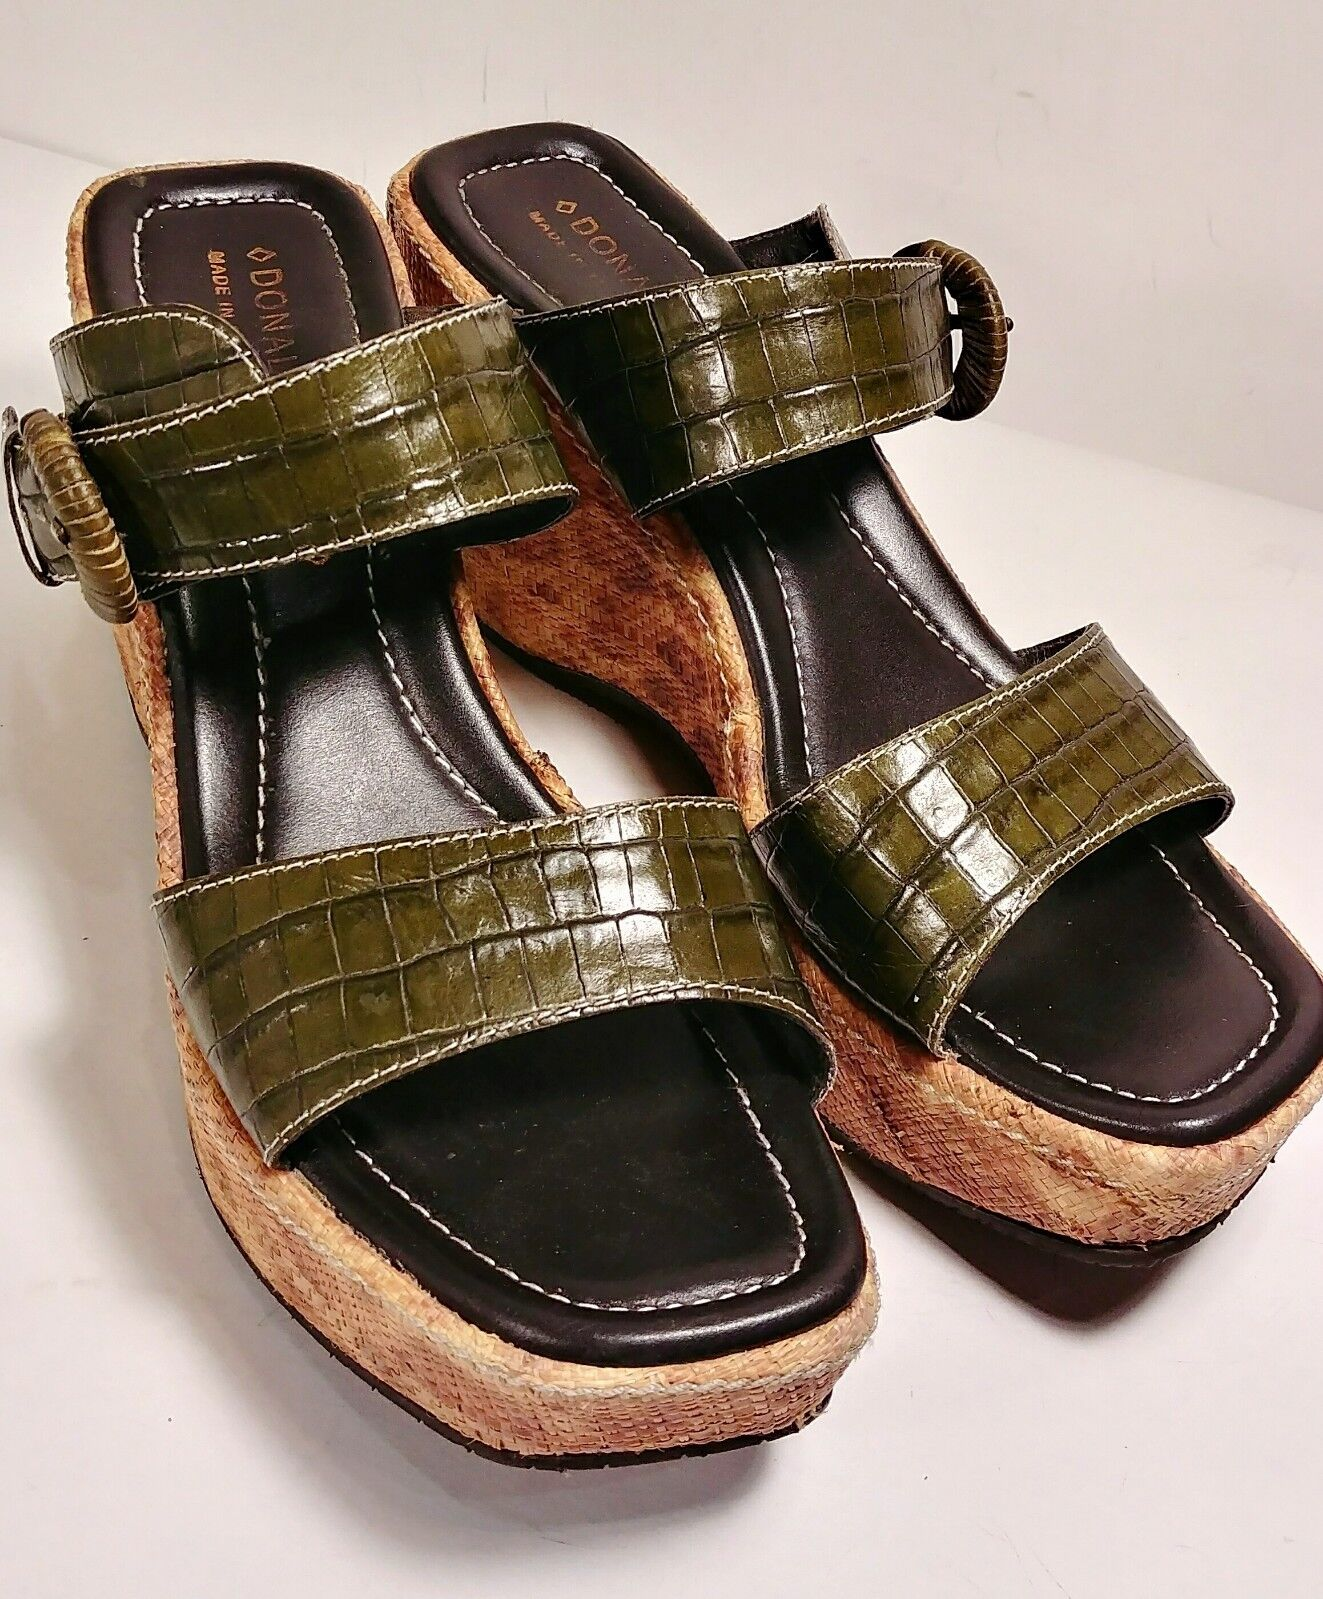 Donald J Pliner Green Green Green Croc Leather Strappy Platform Sandals Woman's Size US 9 M 622284